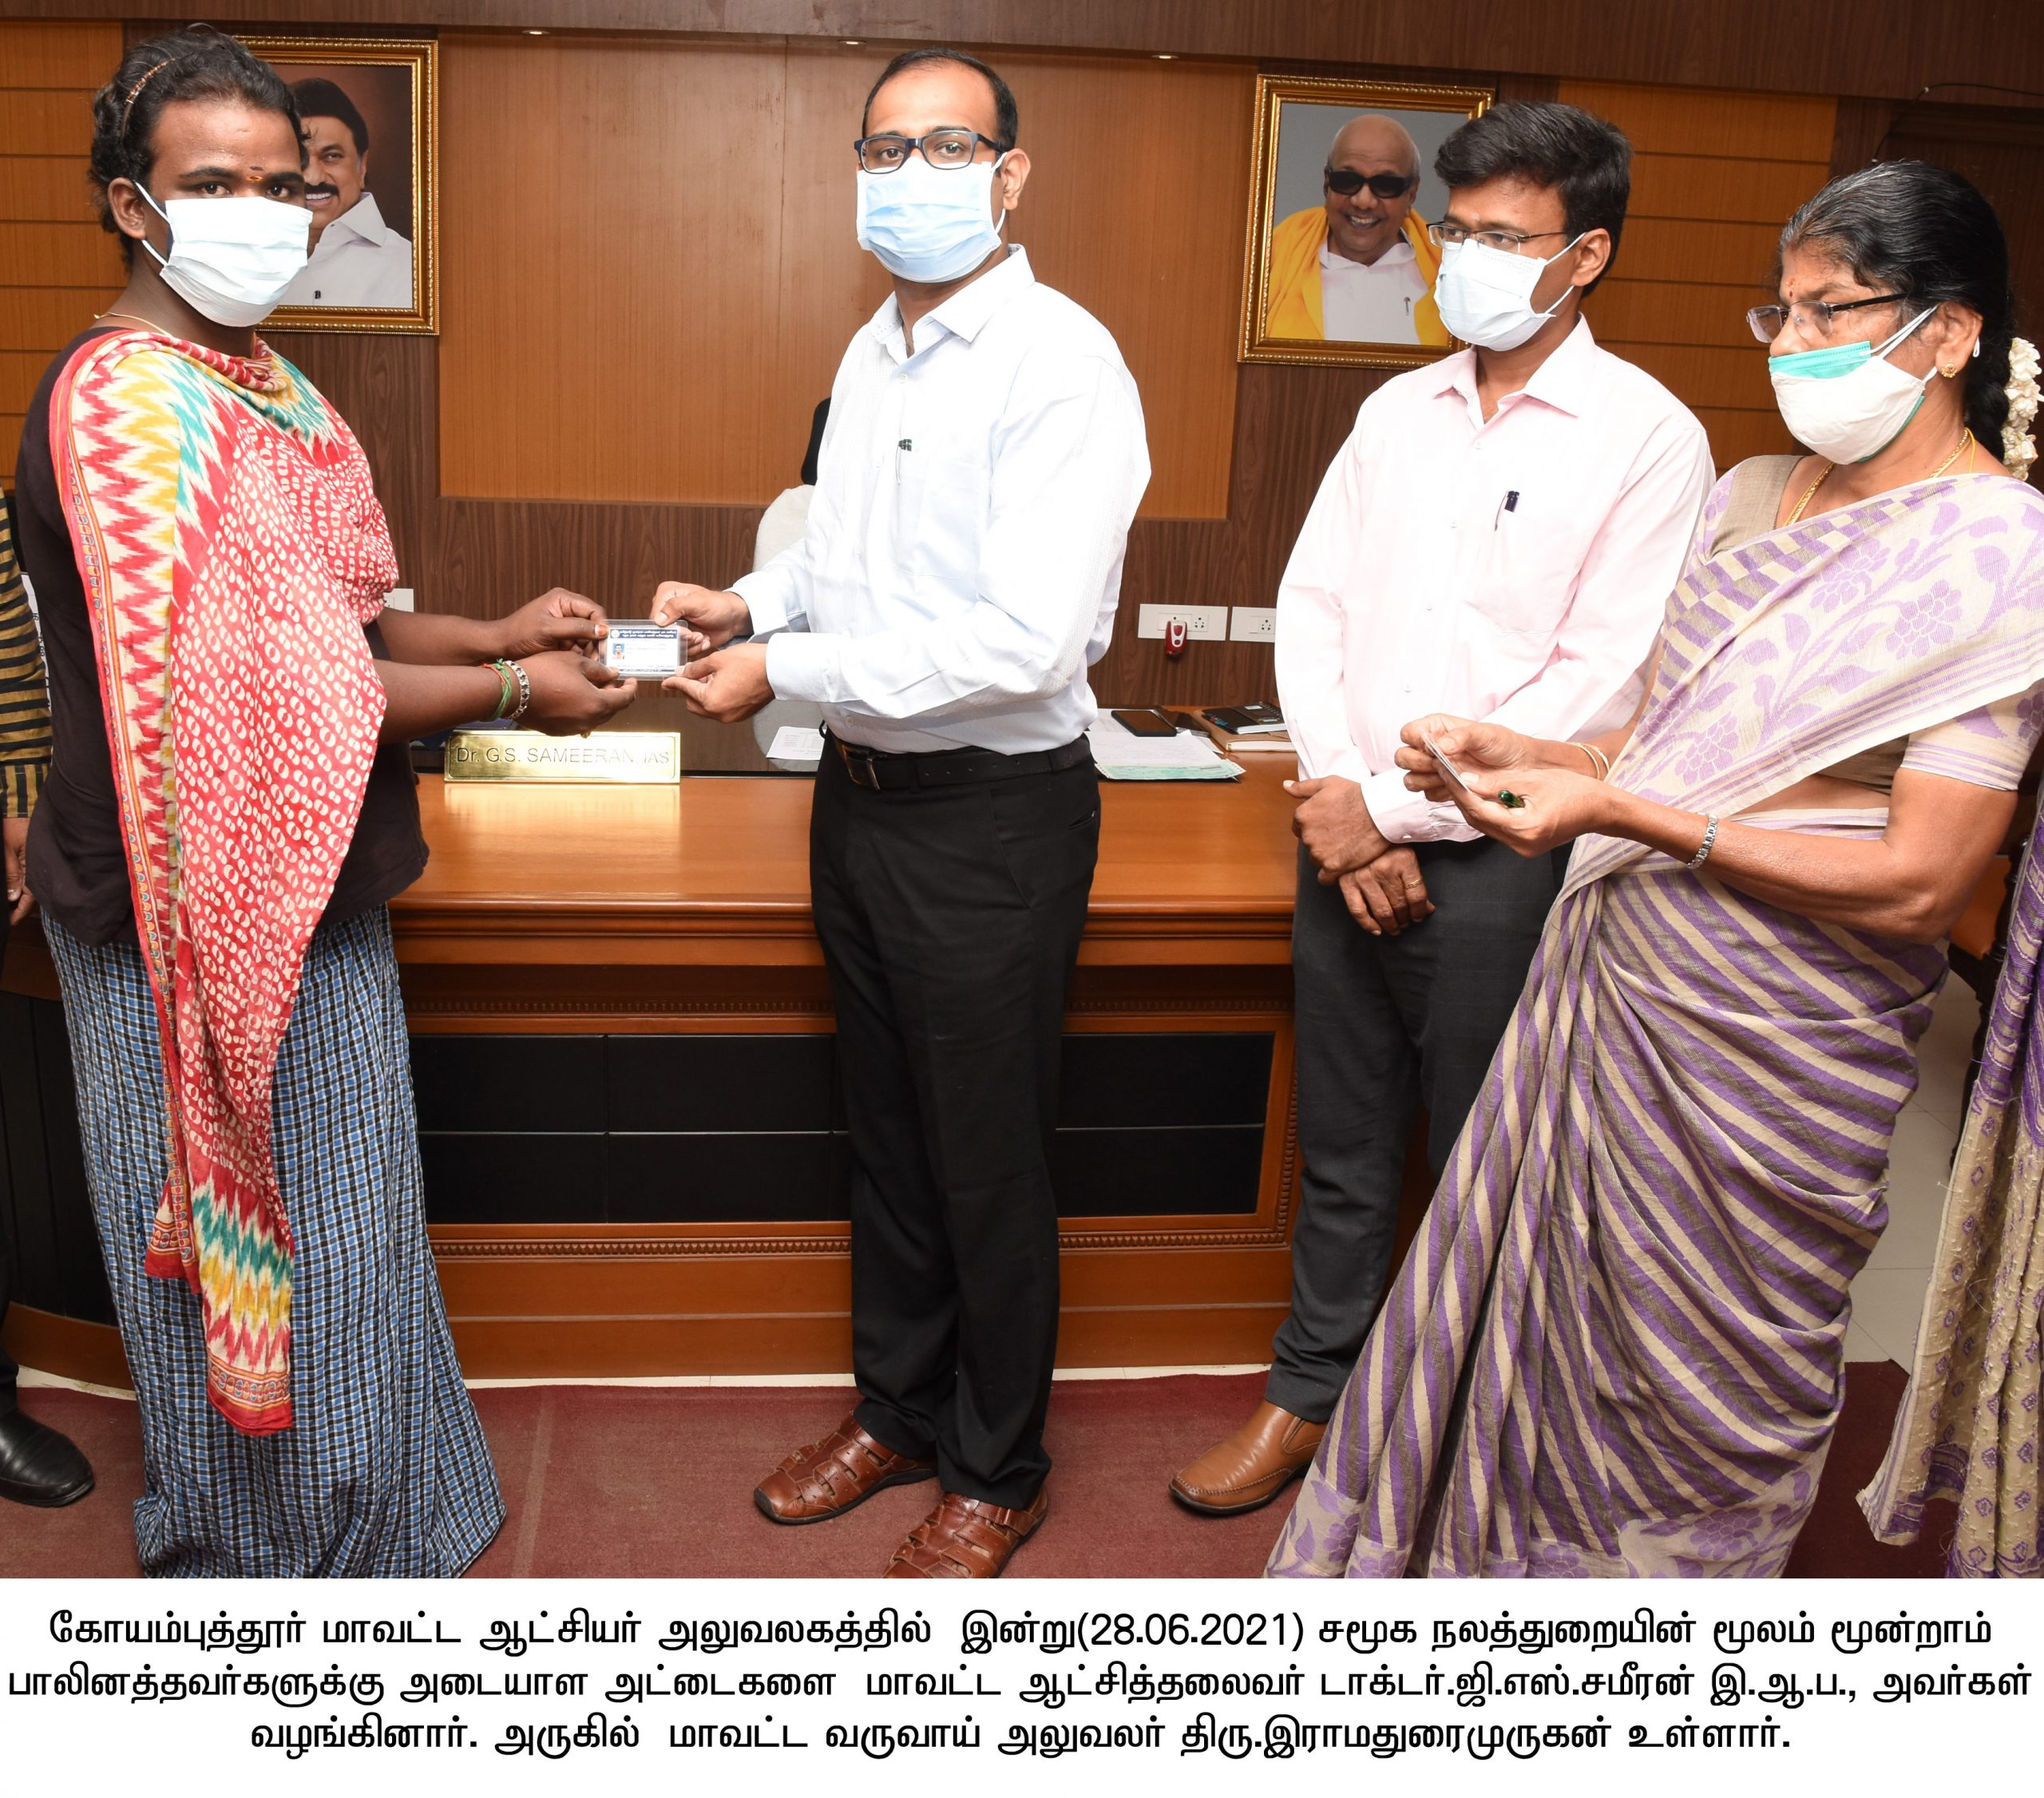 New ID Card for Third Gender Catagories Distributed by the District Collector